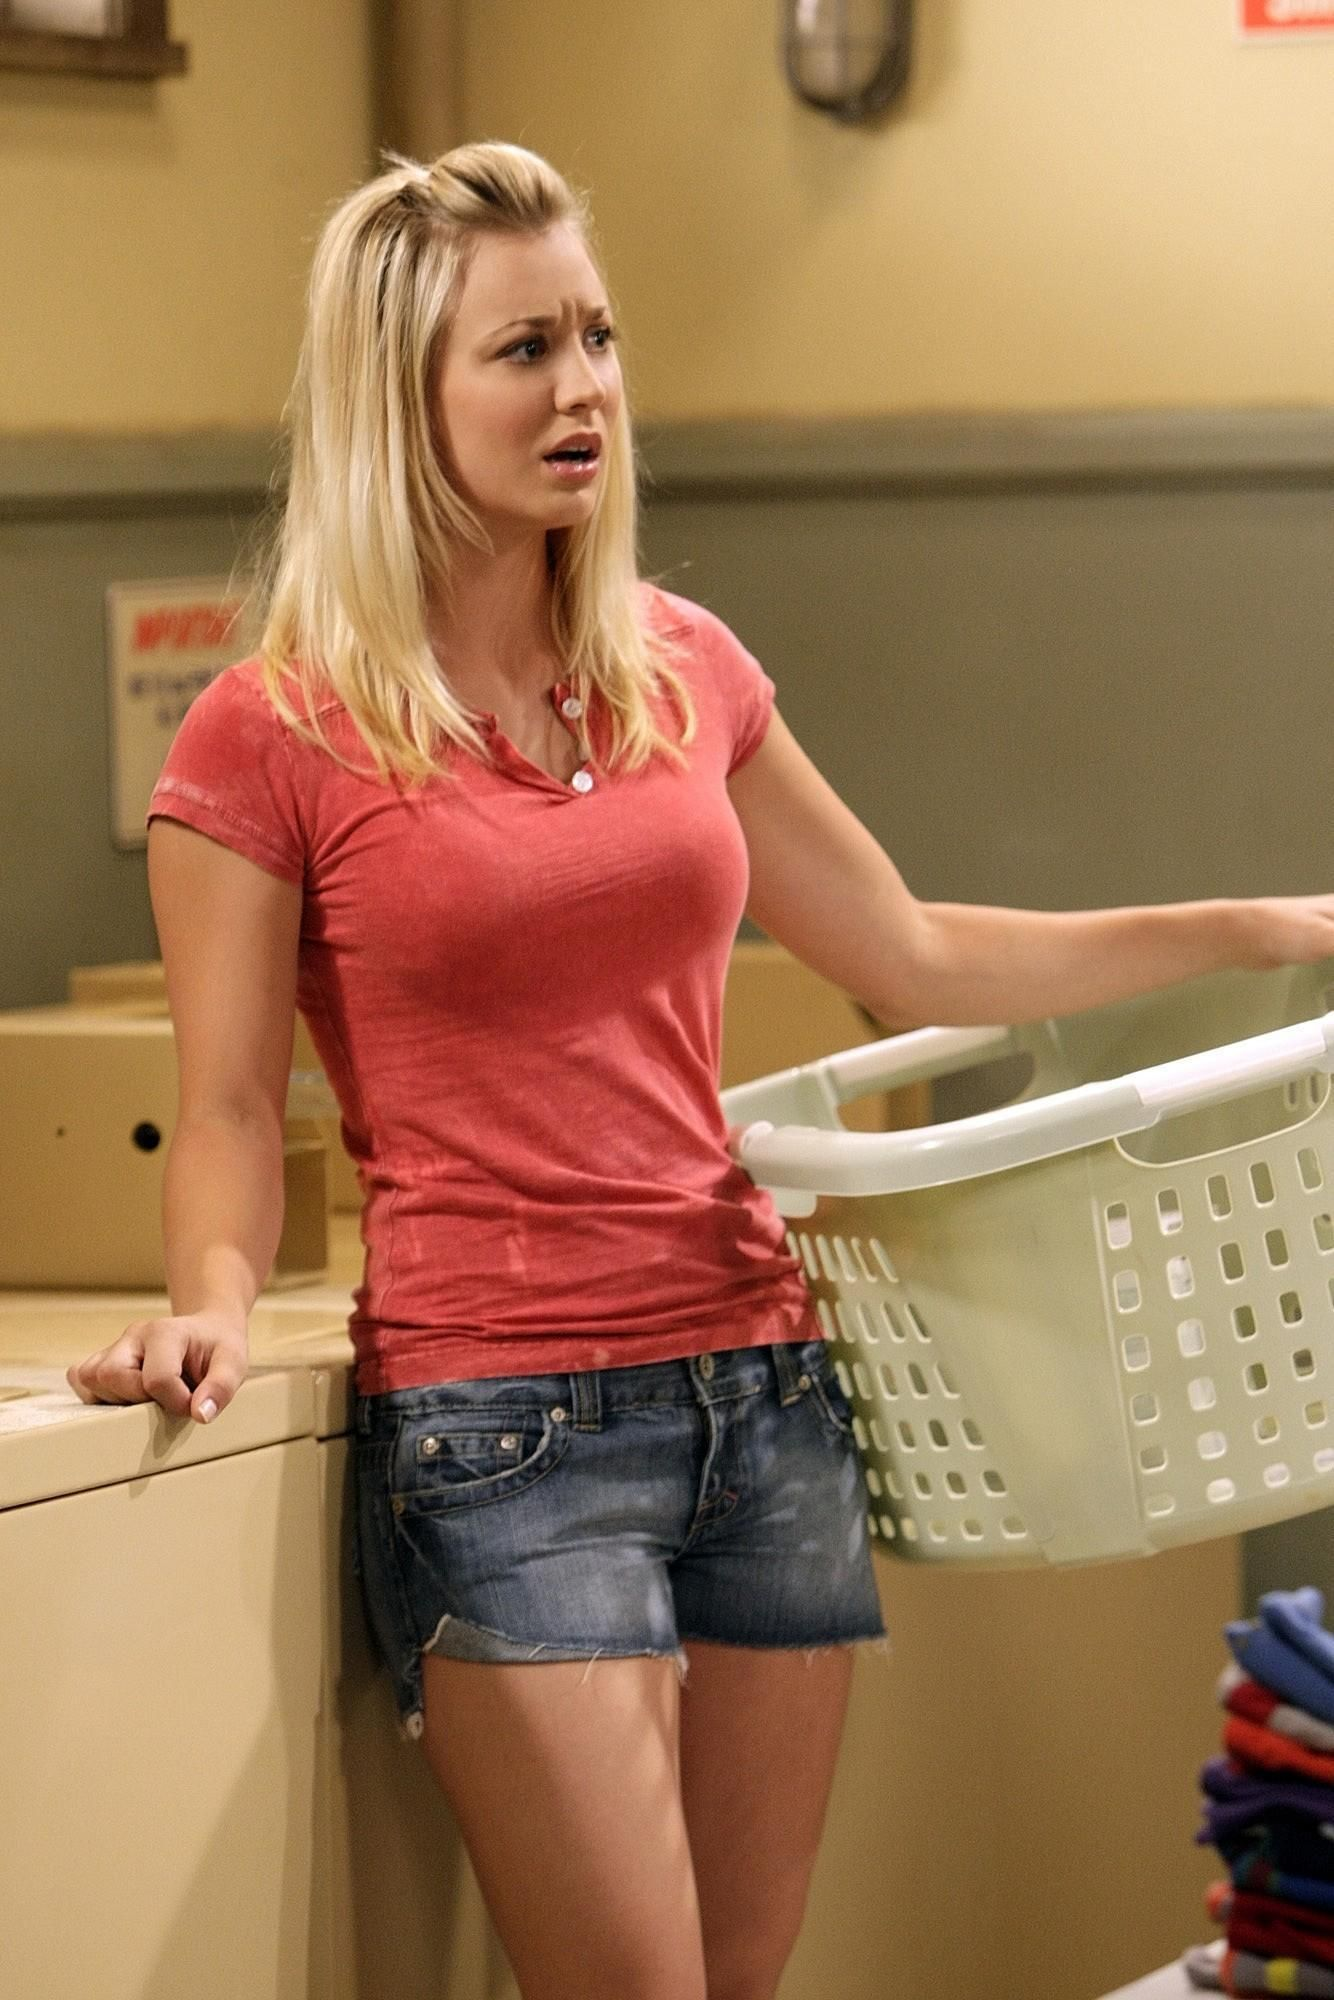 Kaley Cuoco As Penny The Big Bang Theory Belle Donne Famose